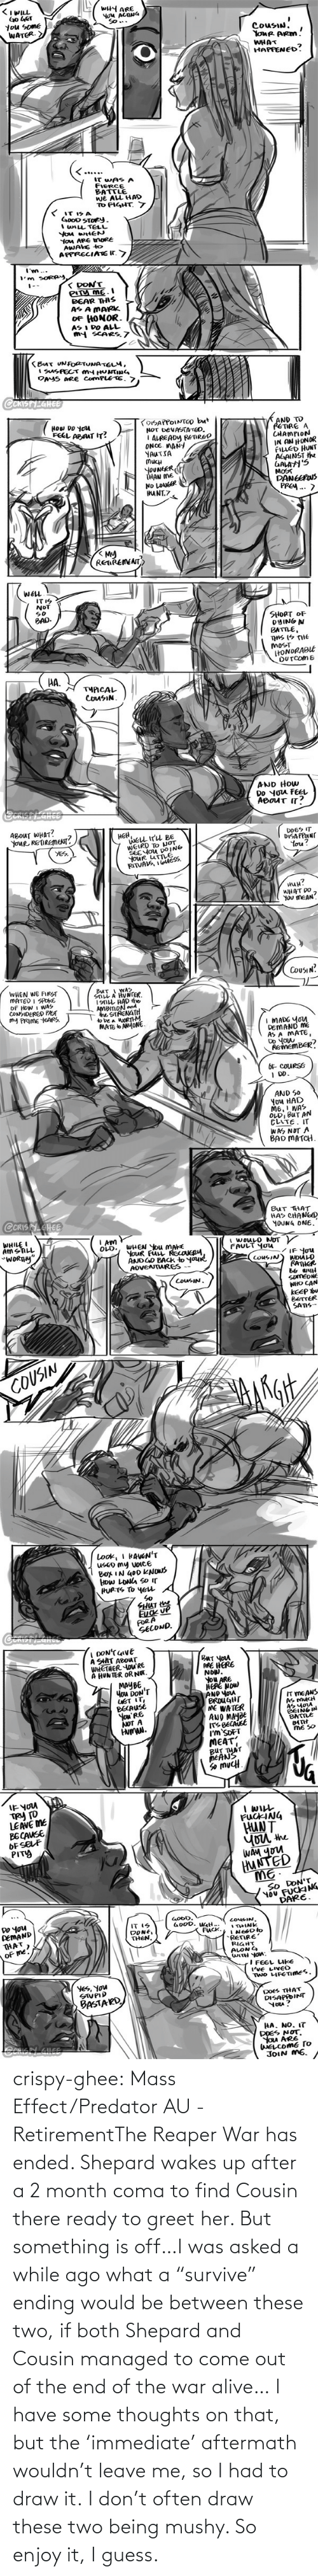 "I Had: crispy-ghee:  Mass Effect/Predator AU - RetirementThe Reaper War has ended. Shepard wakes up after a 2 month coma to find Cousin there ready to greet her. But something is off…I was asked a while ago what a ""survive"" ending would be between these two, if both Shepard and Cousin managed to come out of the end of the war alive… I have some thoughts on that, but the 'immediate' aftermath wouldn't leave me, so I had to draw it. I don't often draw these two being mushy. So enjoy it, I guess."